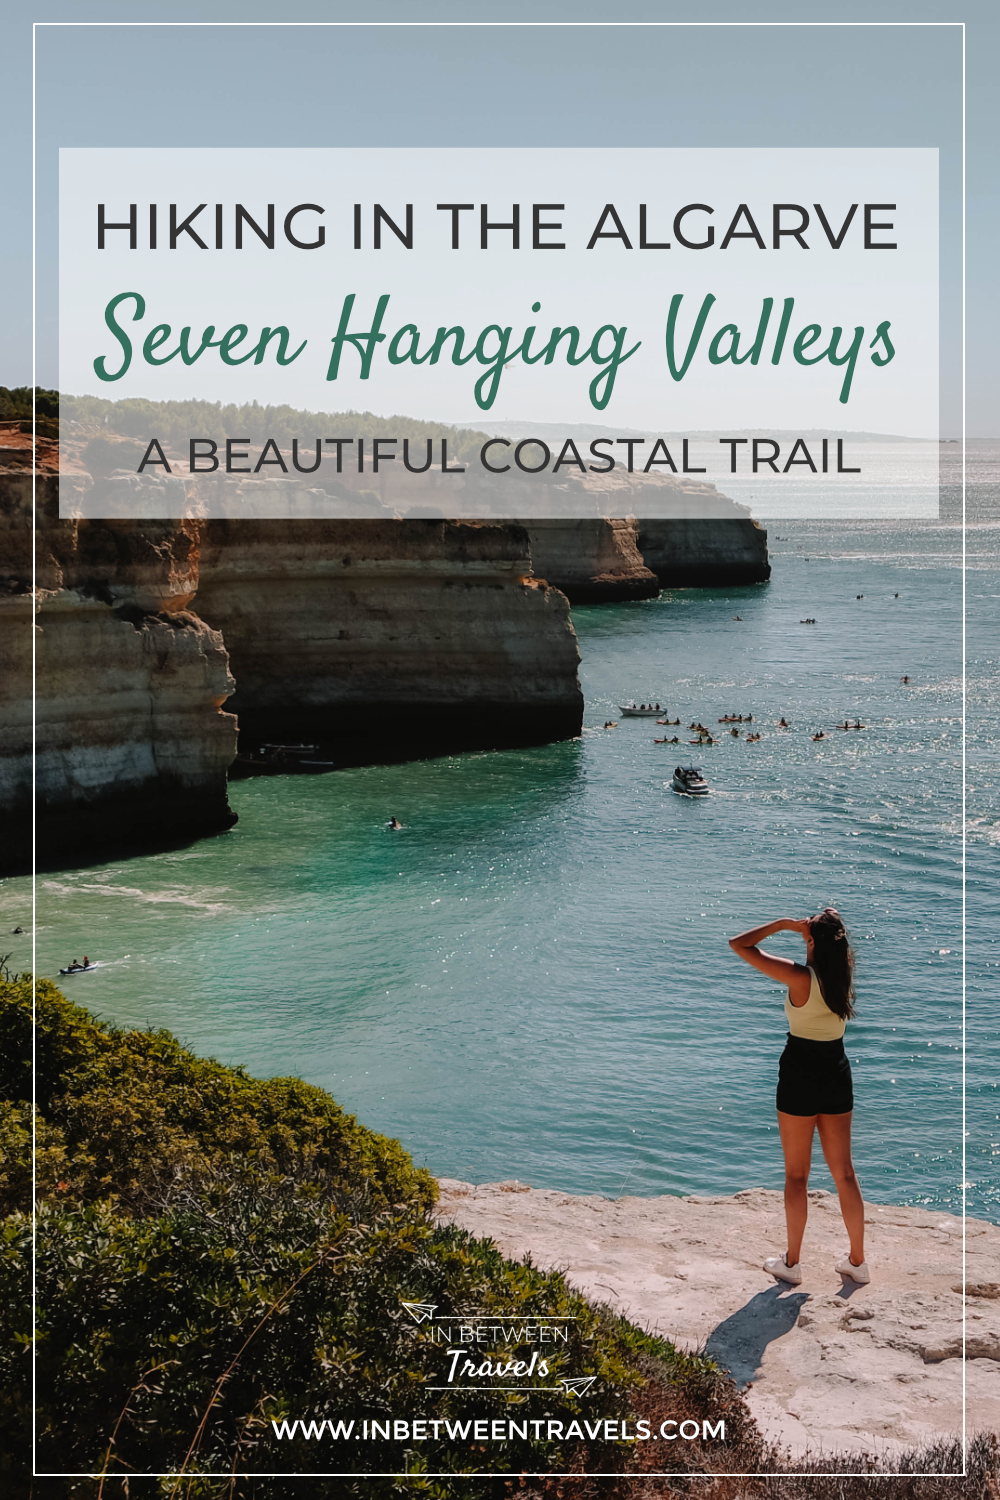 Hiking the Seven Hanging Valleys Trail in the Algarve, Portugal